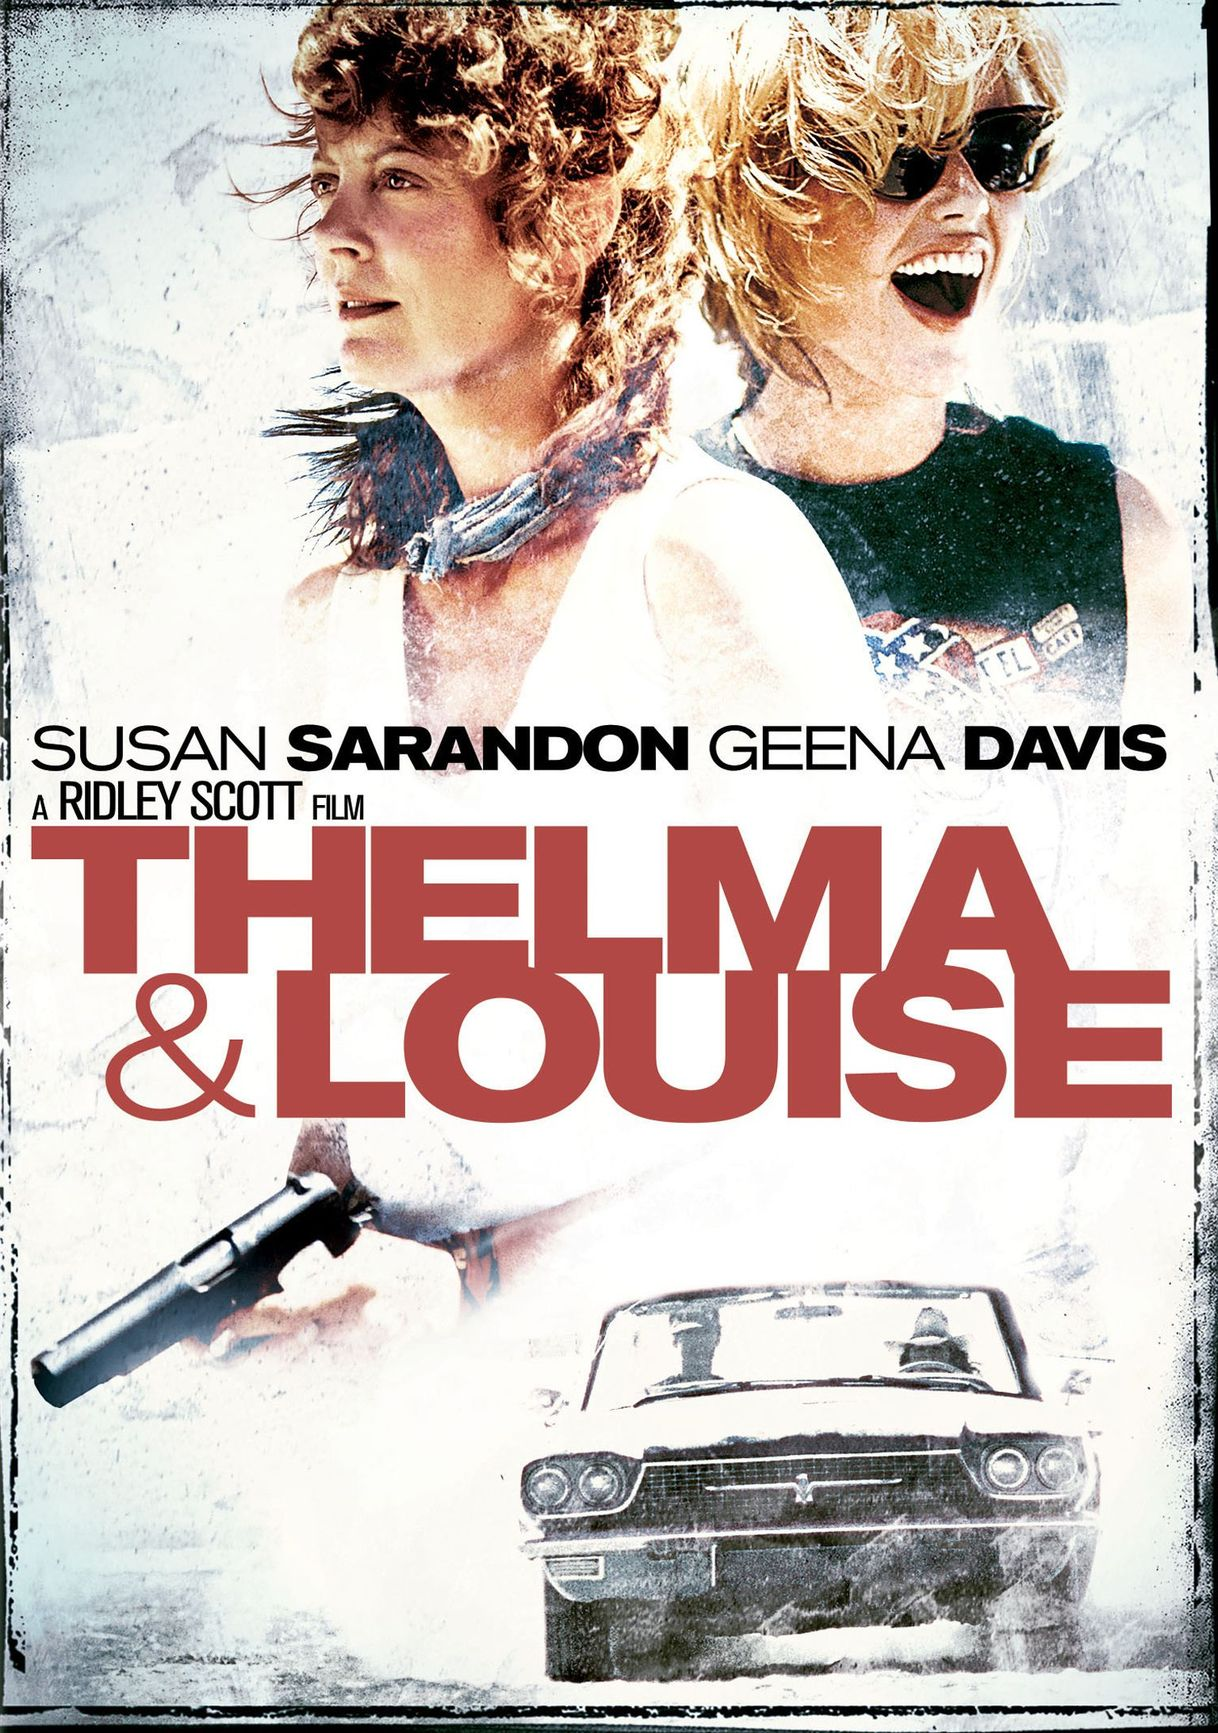 Thema and louise 2.jpg